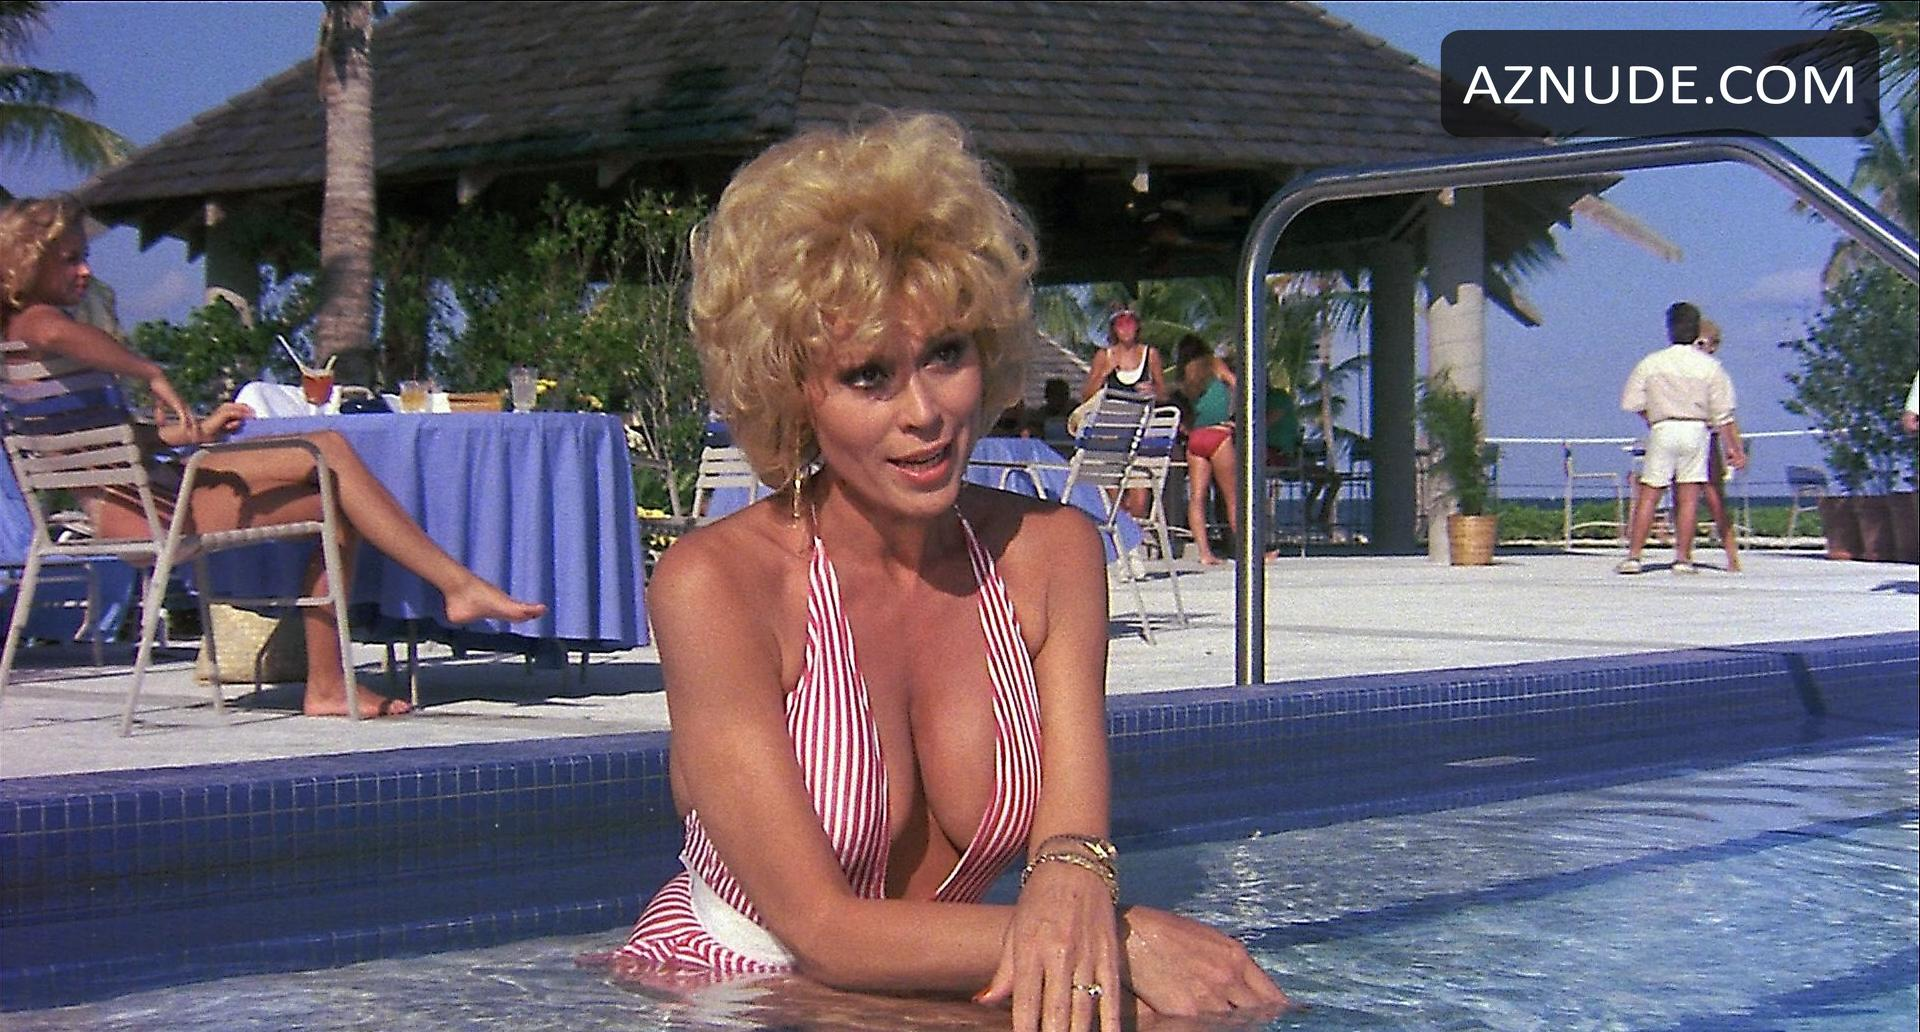 Agree with leslie easterbrook hot